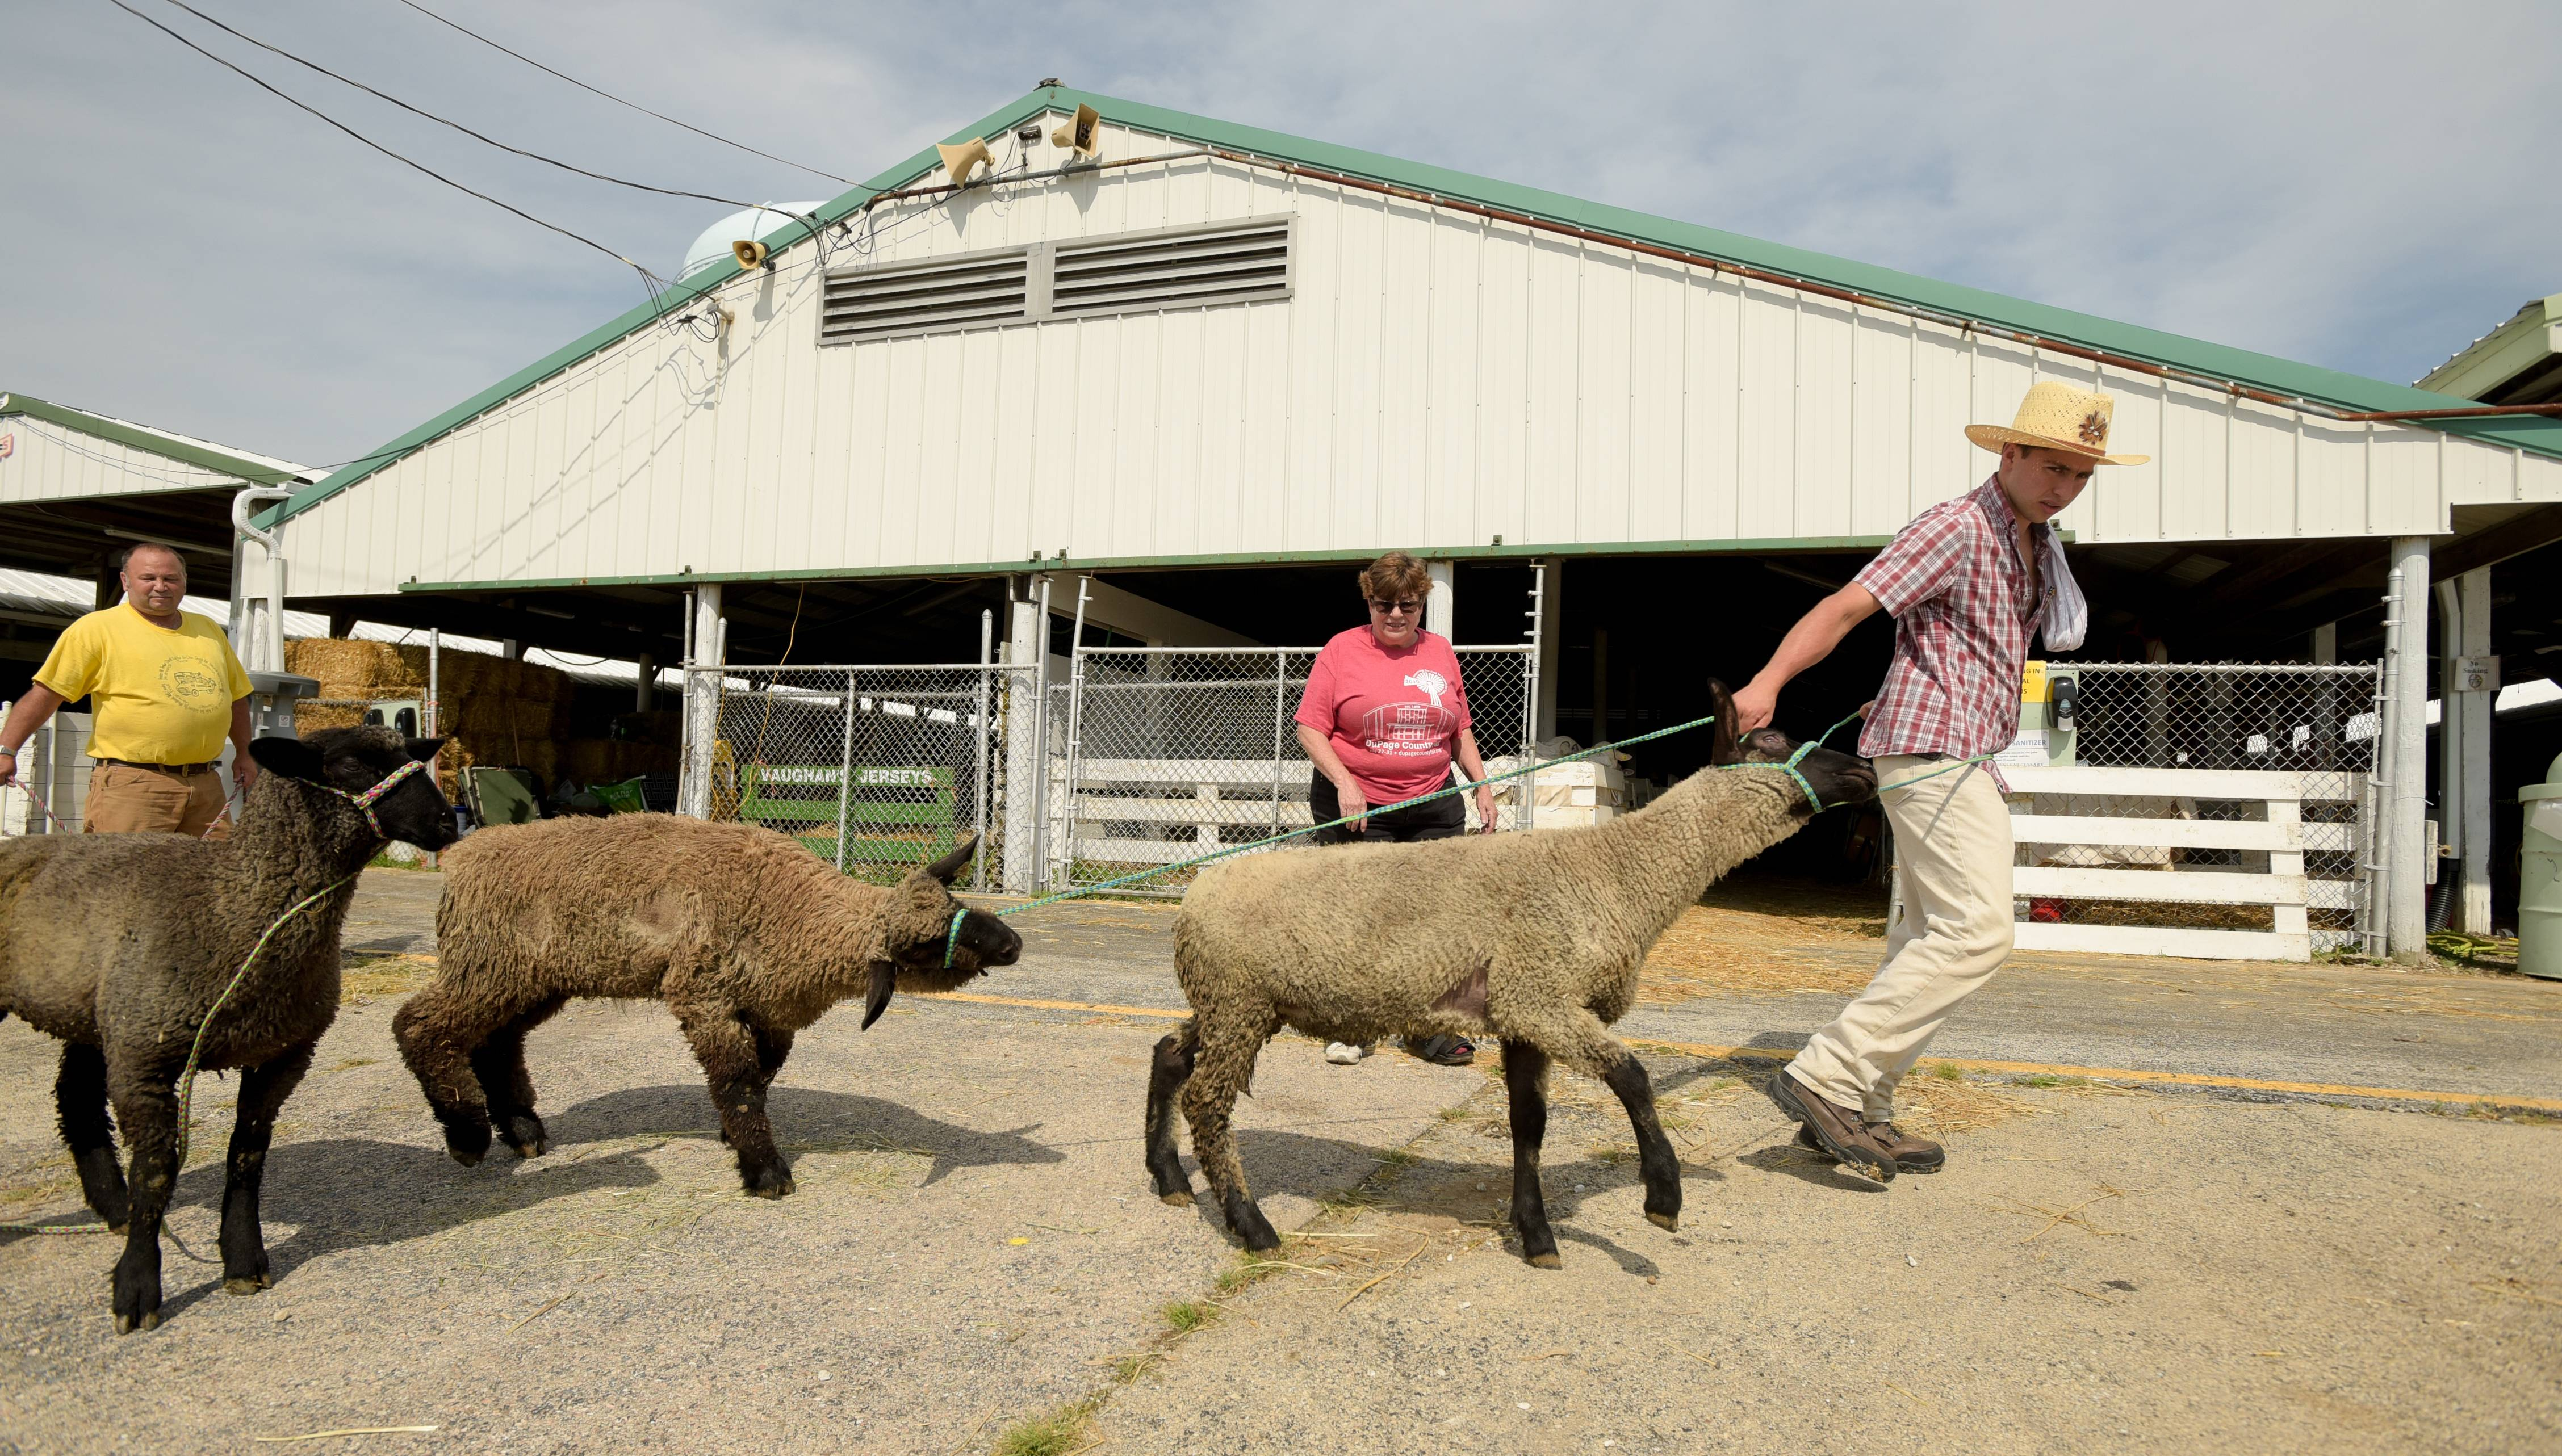 Wilson Nino of Charleston, Ill., helps out by ranging up sheep to be used for the shearing demonstration at the DuPage County Fairgrounds on Tuesday.